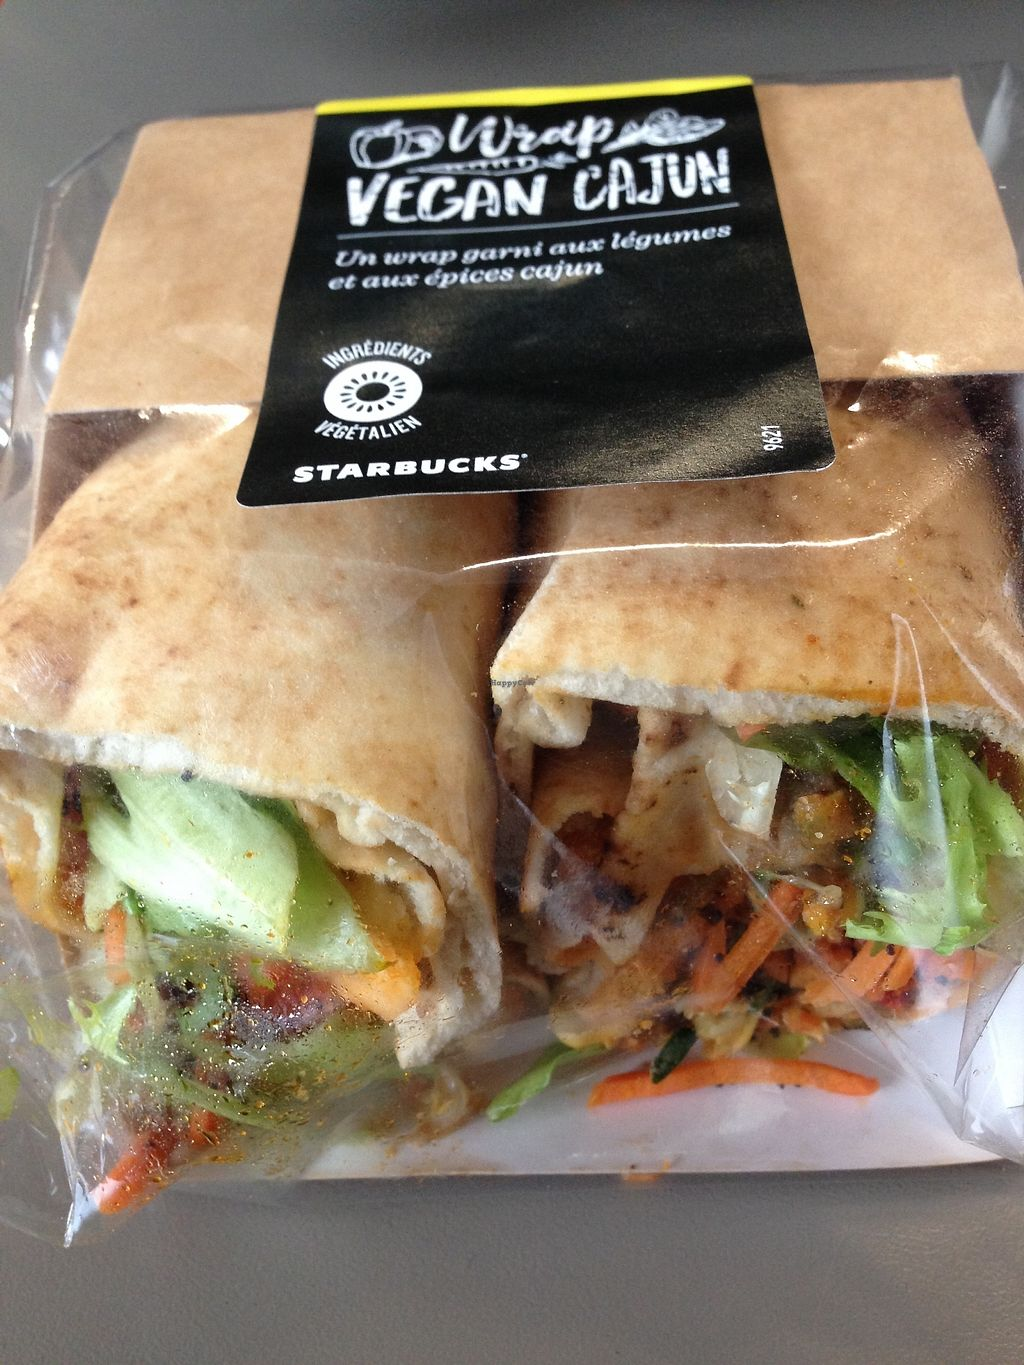 "Photo of CDG - Starbucks - T2E  by <a href=""/members/profile/BarbaraMorningstar"">BarbaraMorningstar</a> <br/>Vegan humus/vege wrap. Fresh and tasty <br/> April 8, 2018  - <a href='/contact/abuse/image/116478/382710'>Report</a>"